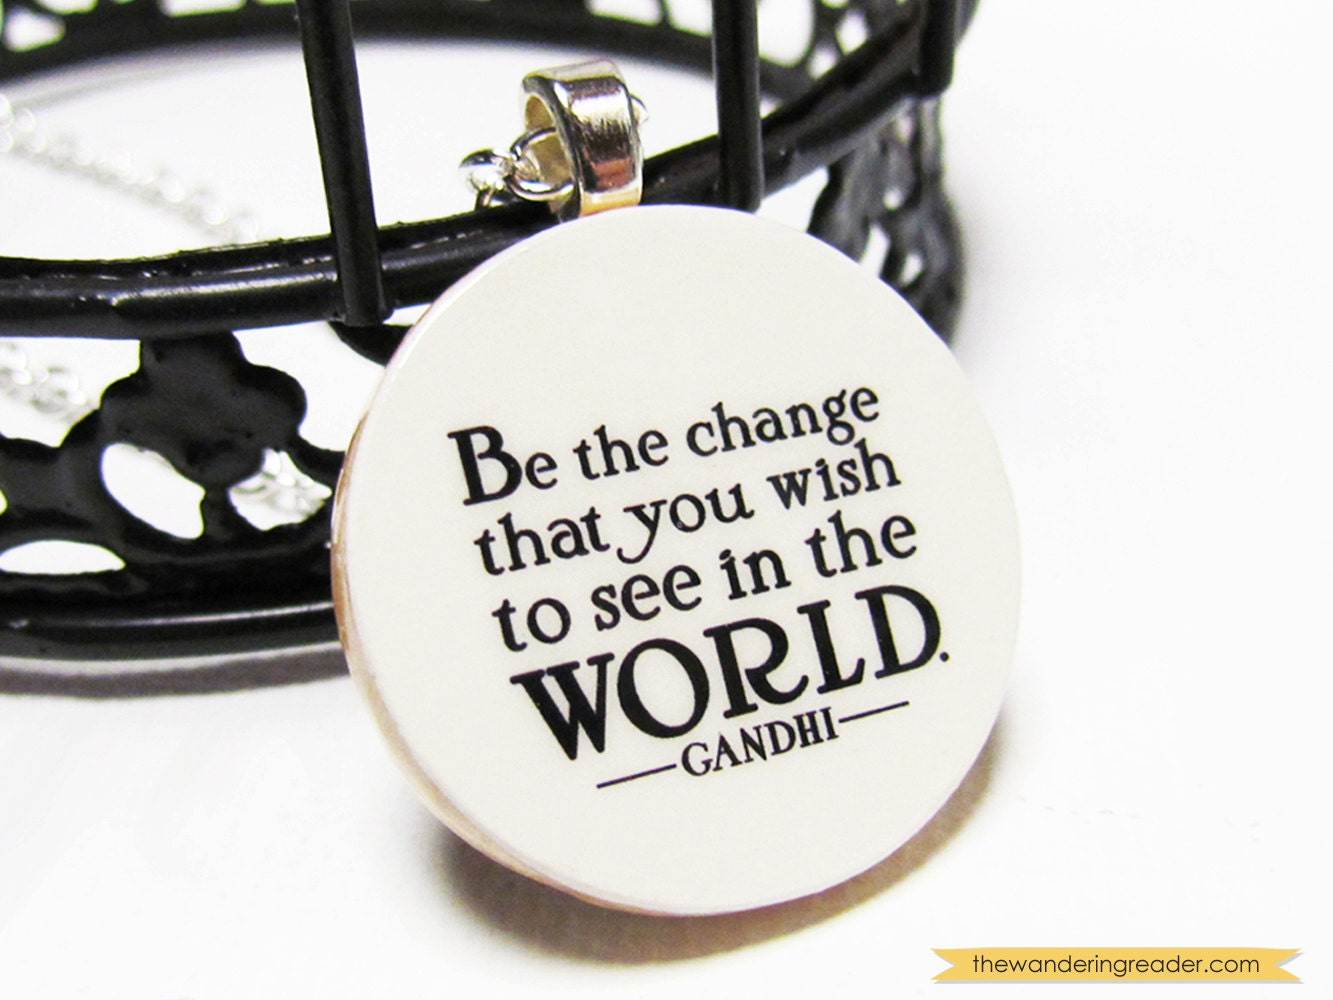 Be the change you wish to see in the world... Inspirational Gandhi Quote Necklace - Free US Shipping